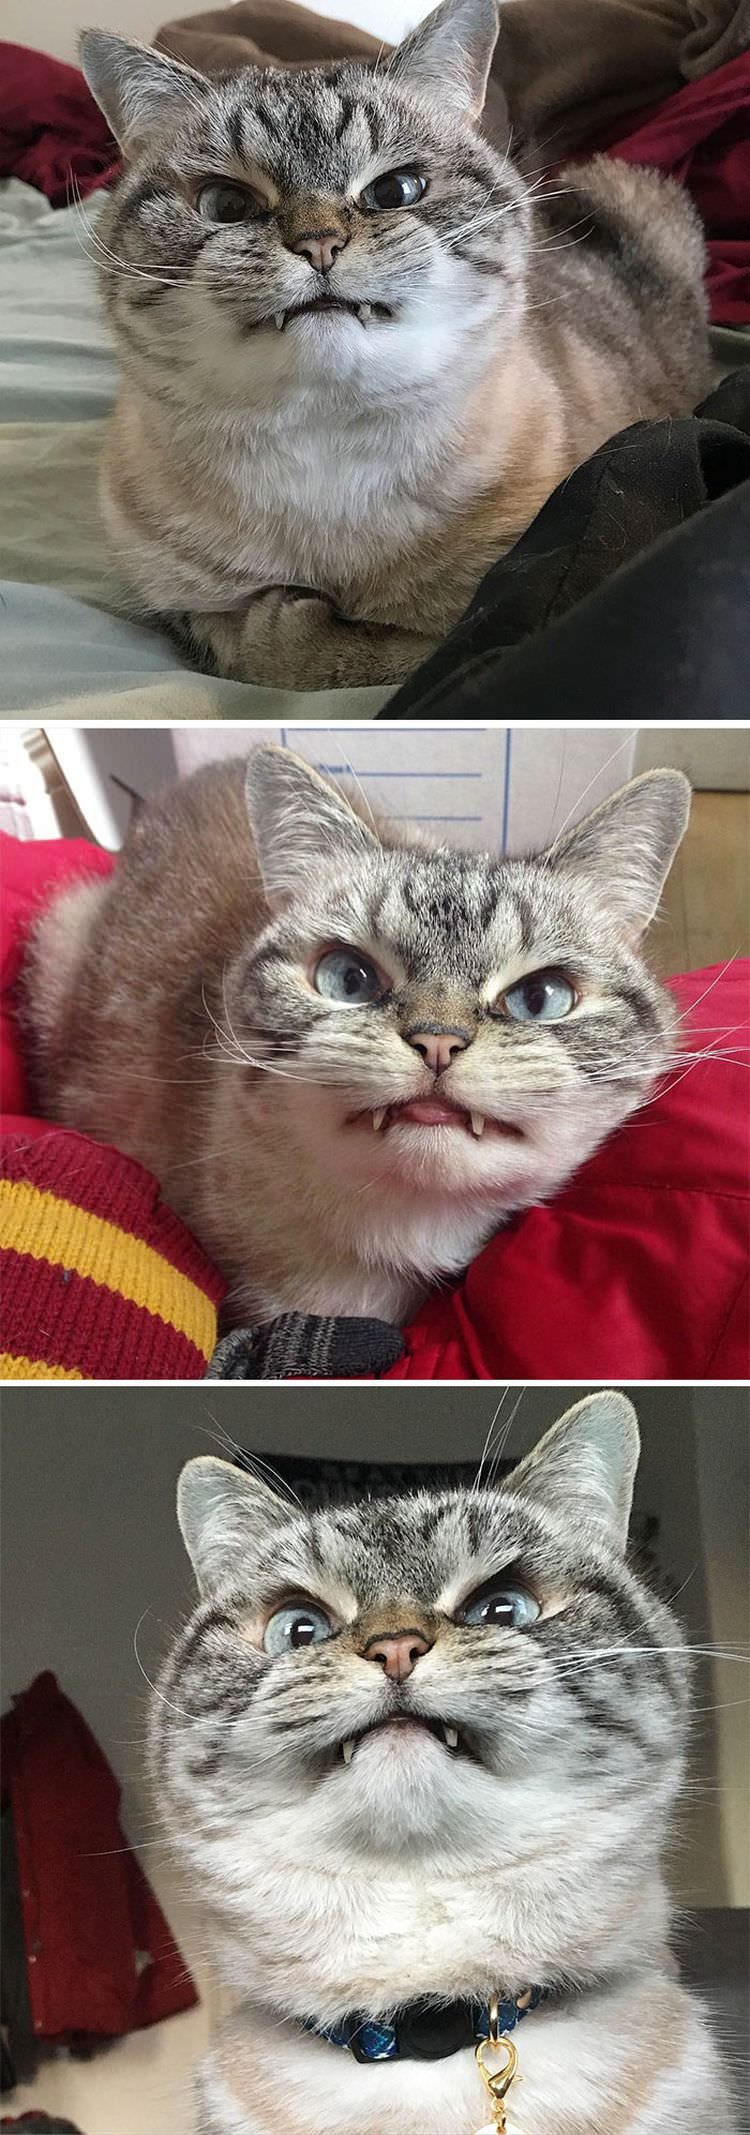 angry-cat-photography-1